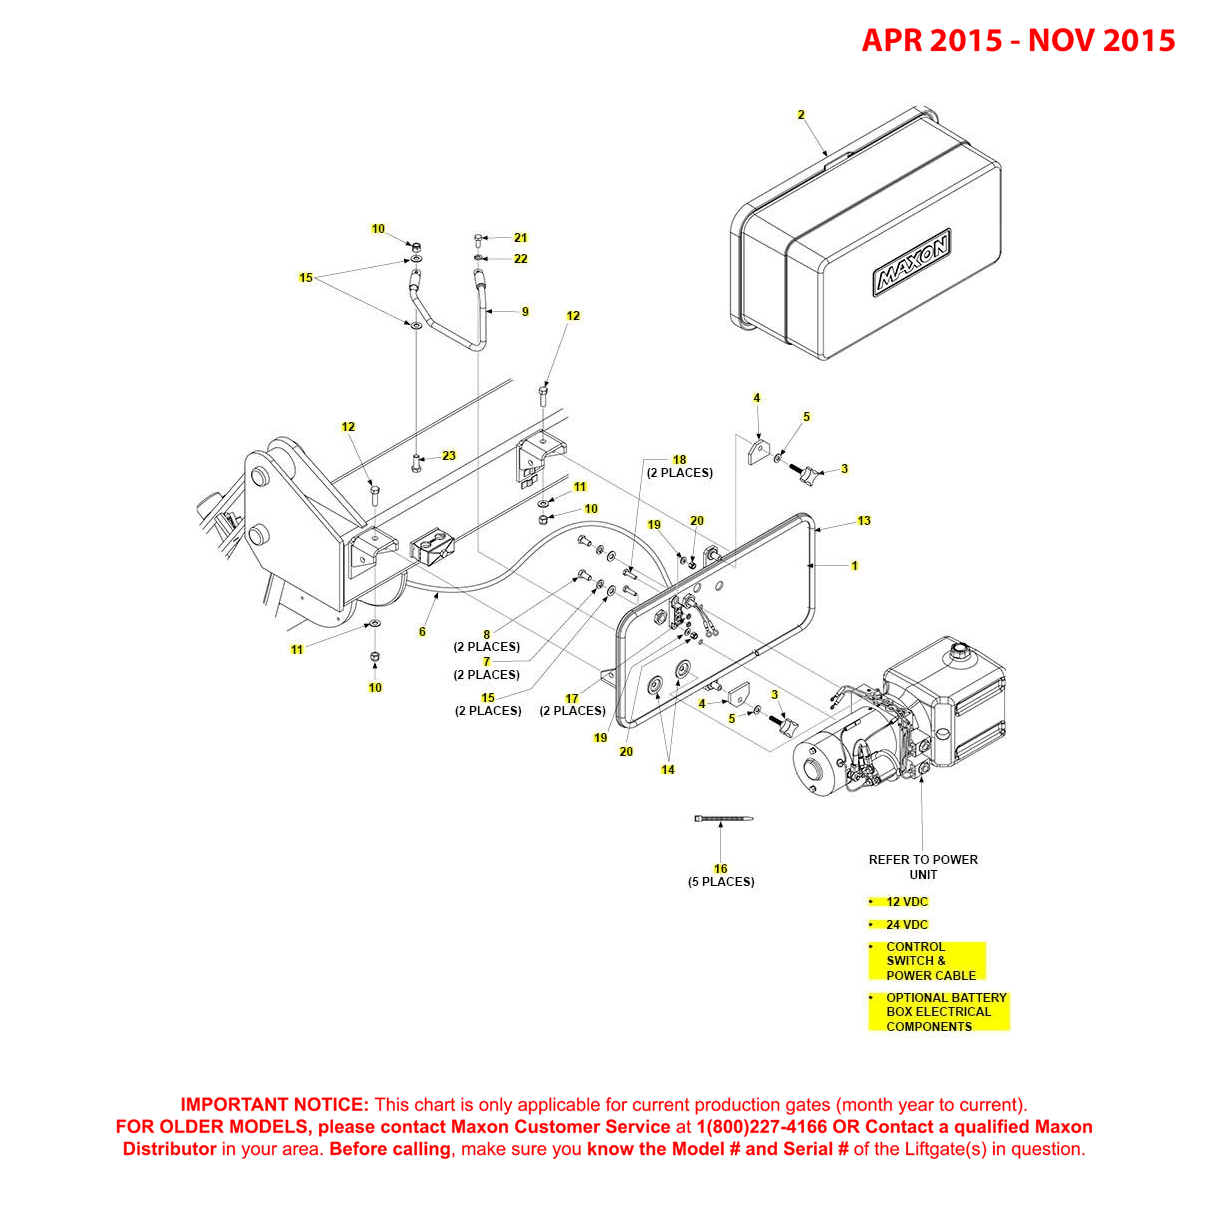 GPTWR (Apr 2015 - Nov 2015) Pump Cover And Mounting Plate Assembly Diagram